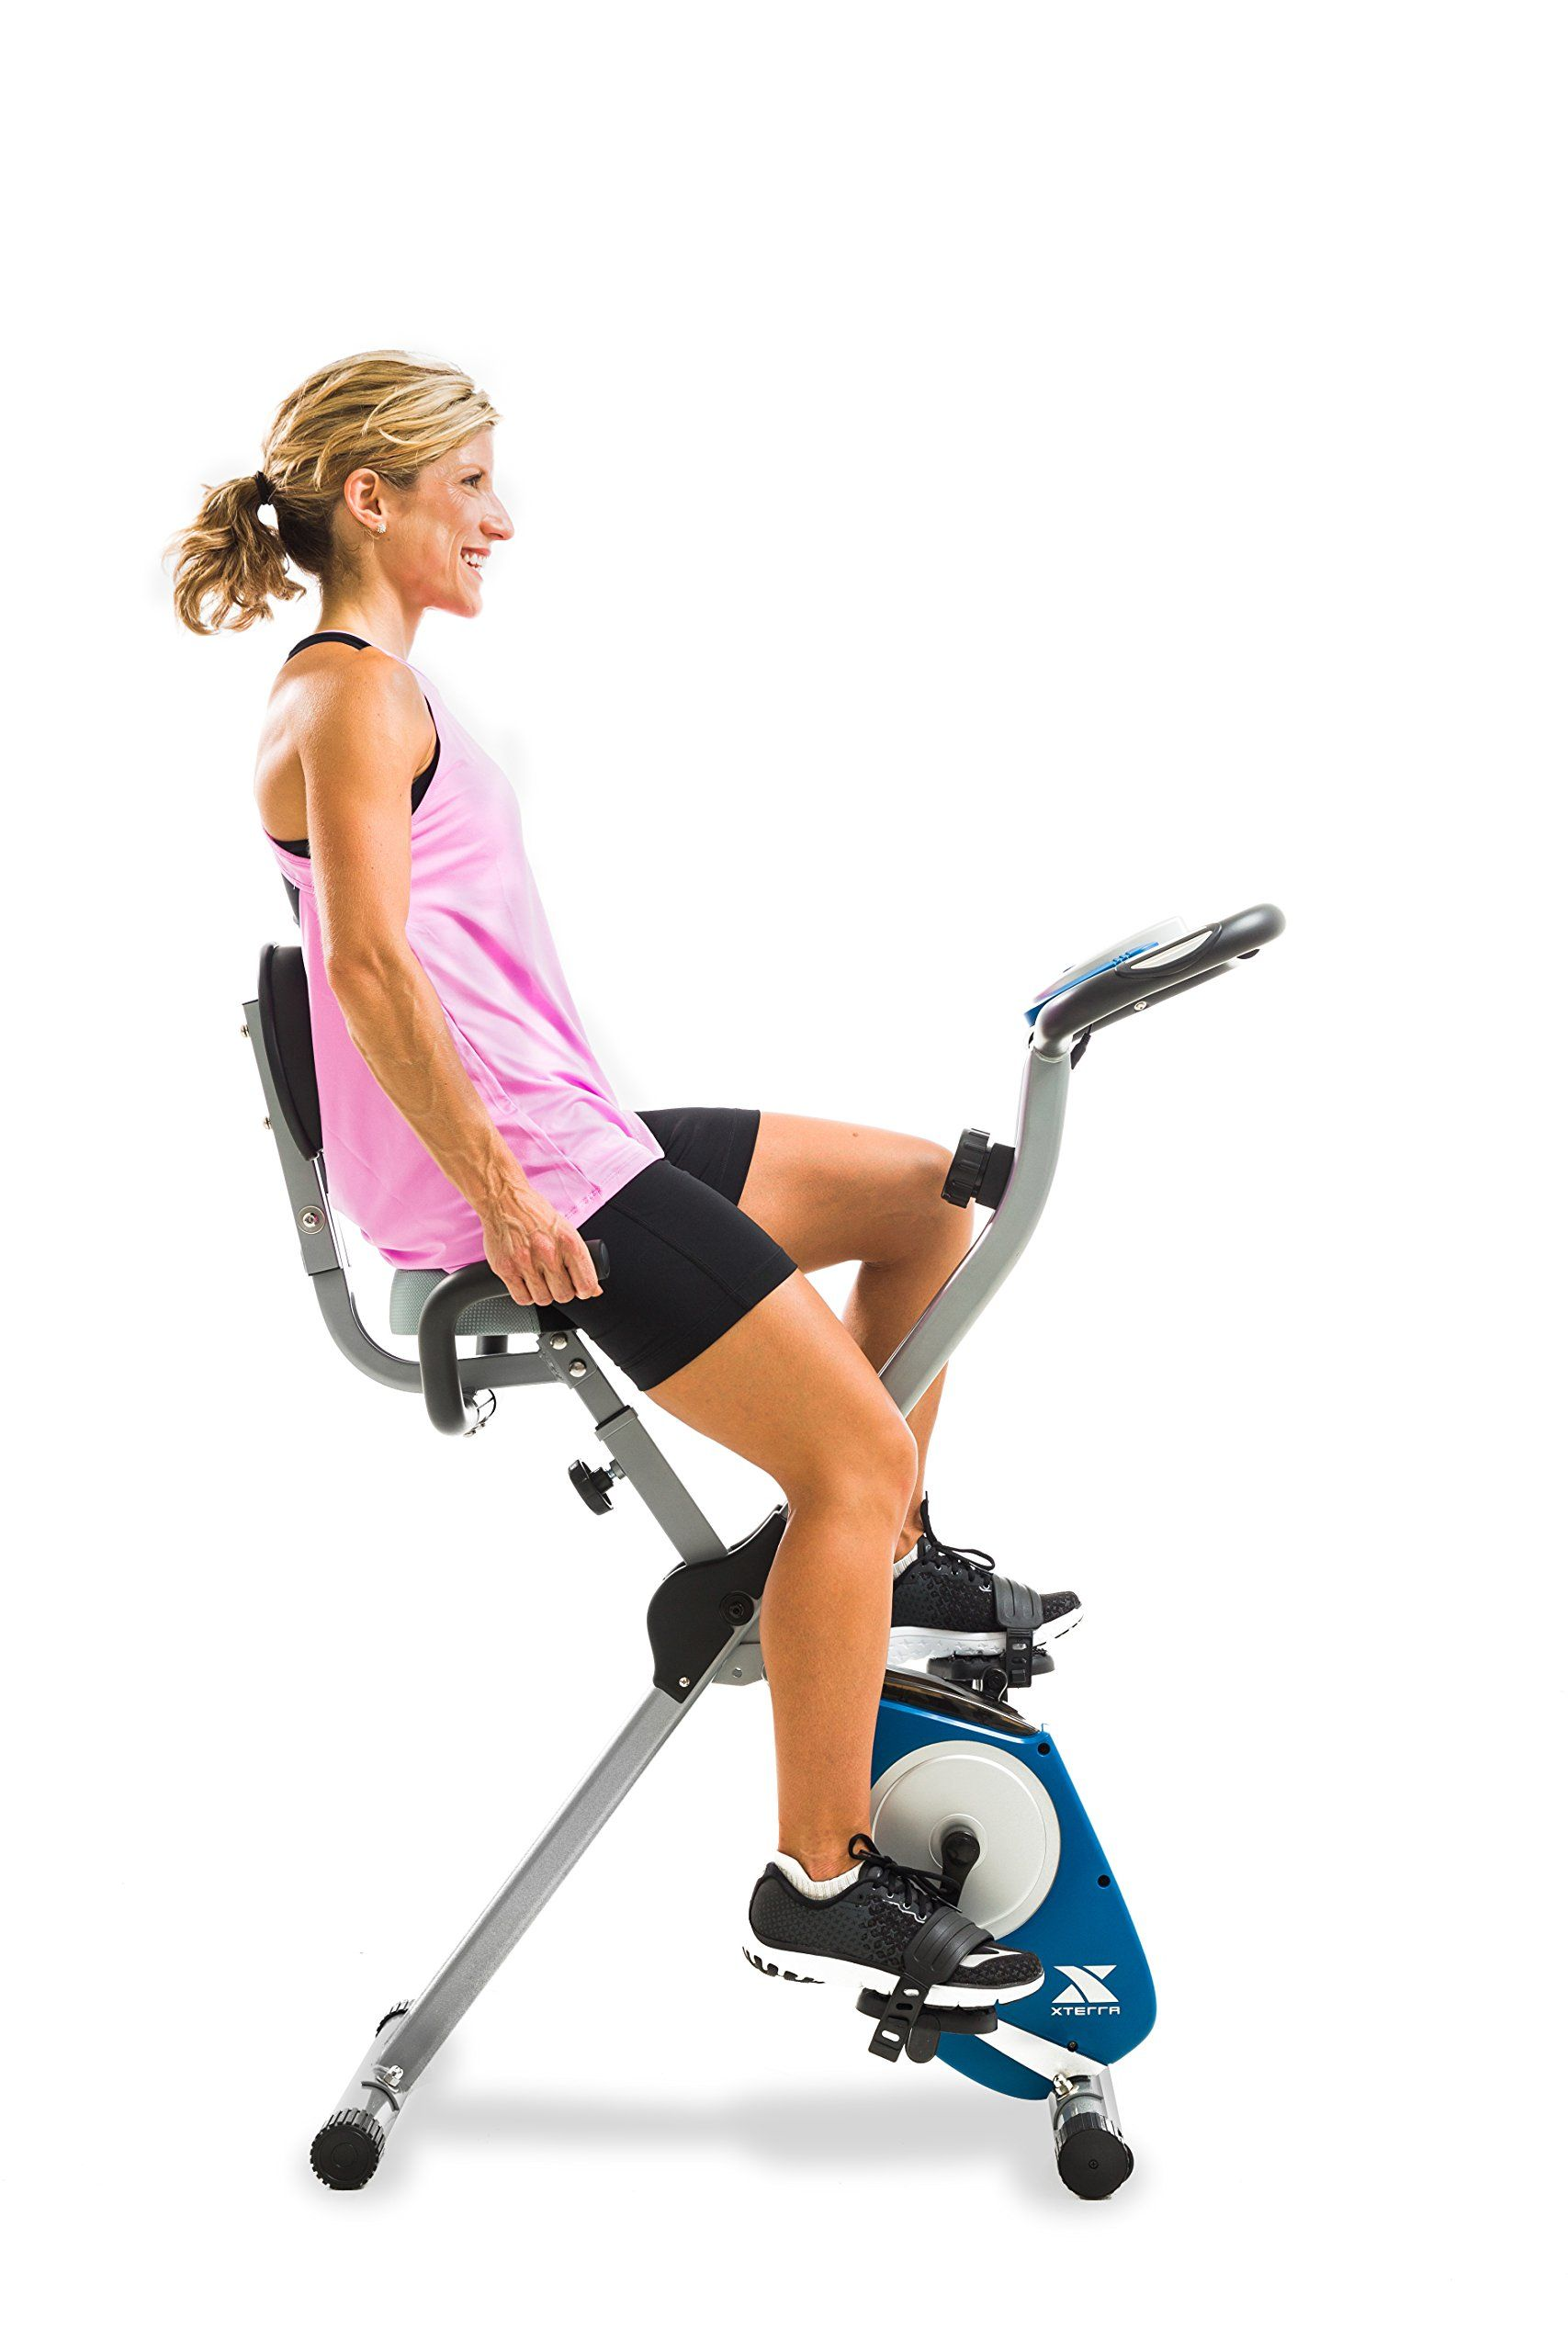 Xterra Fitness Fb350 Folding Exercise Bike Silver Biking